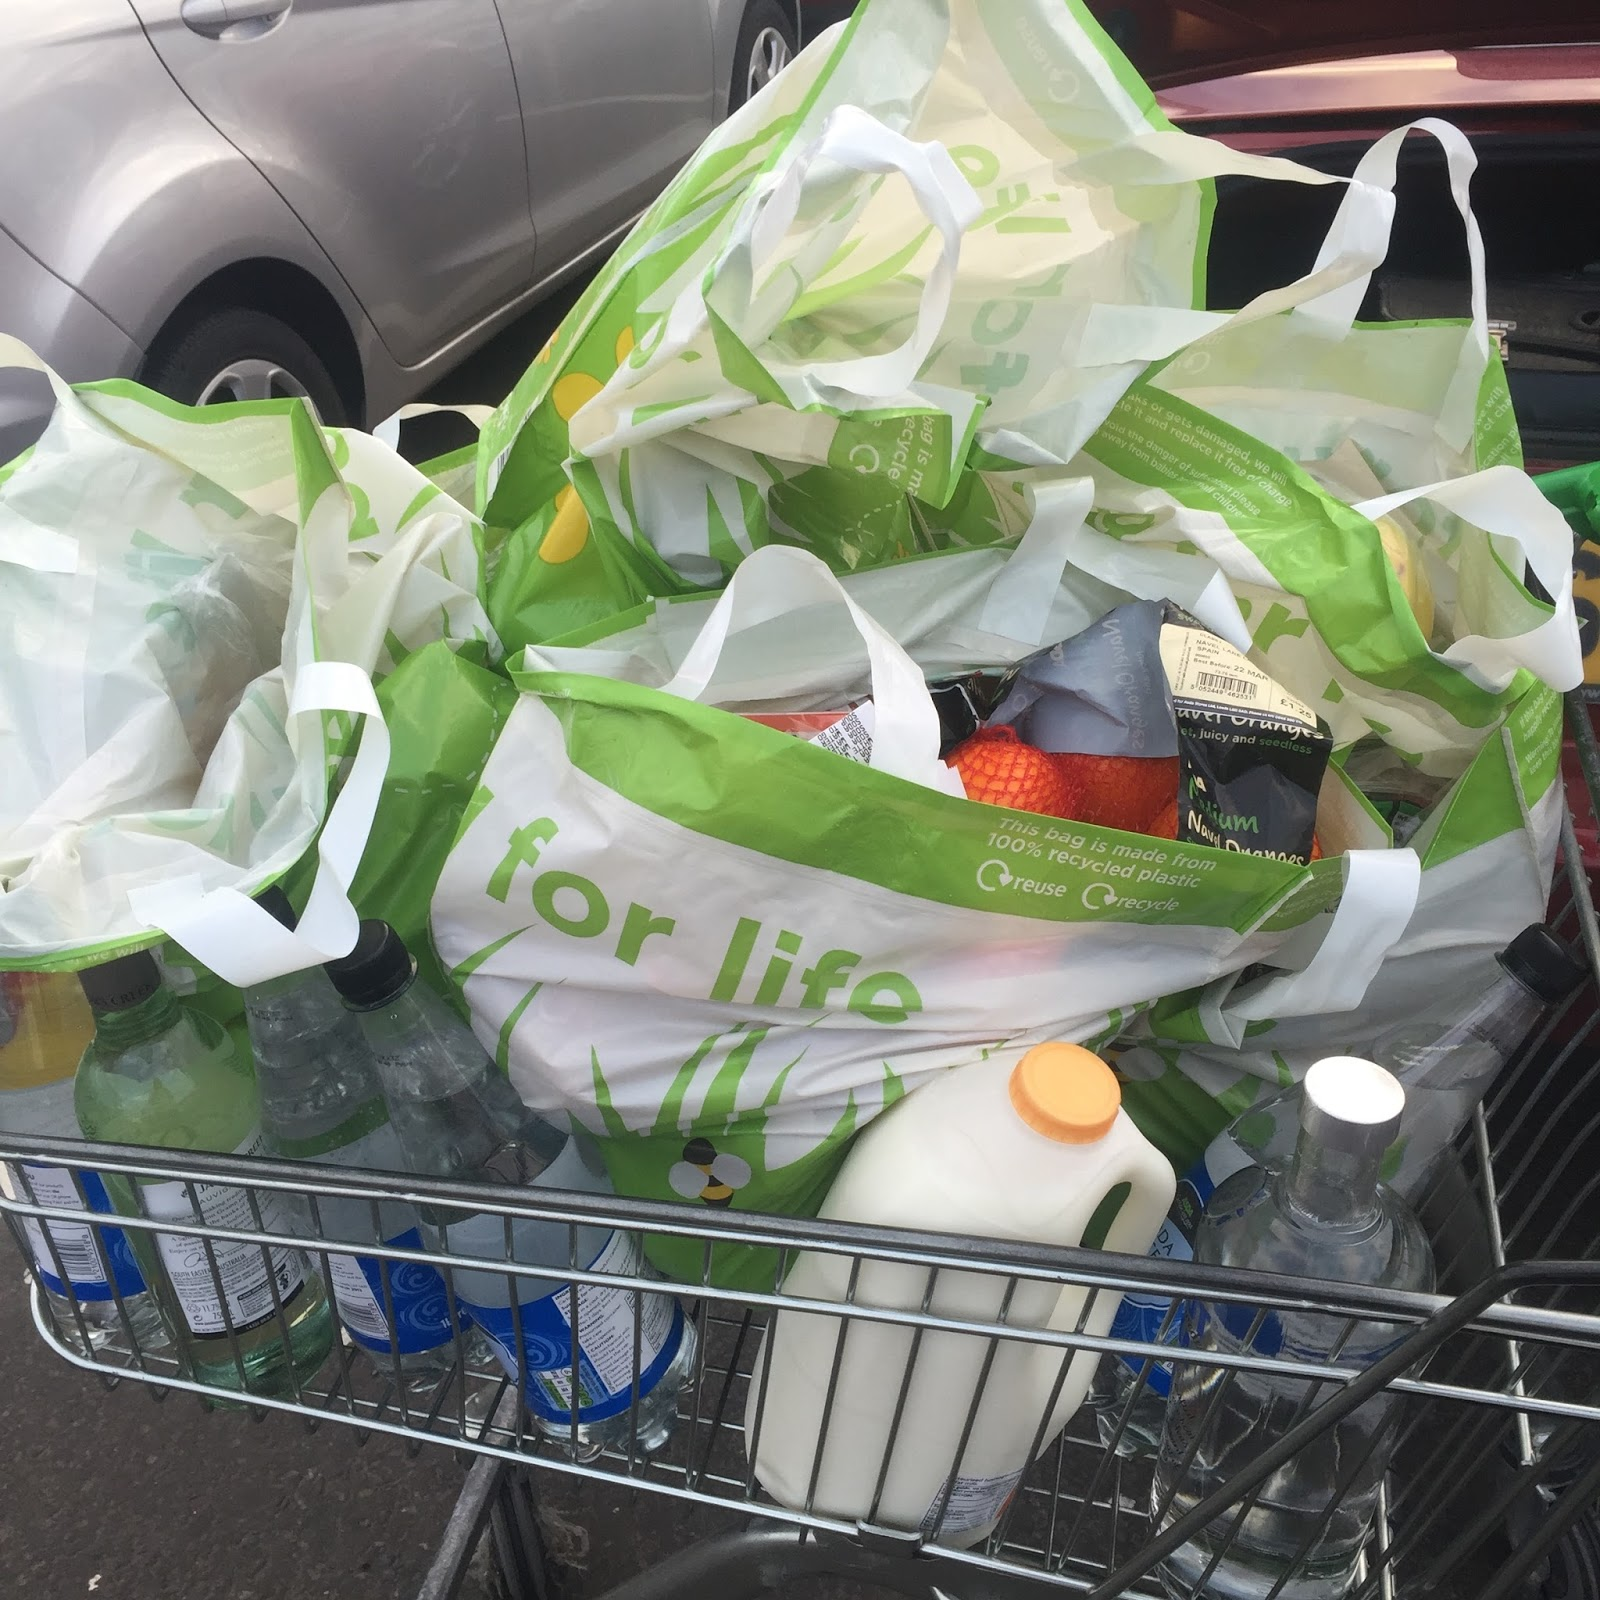 Weight Loss Wednesday - What's In My Shopping Trolley